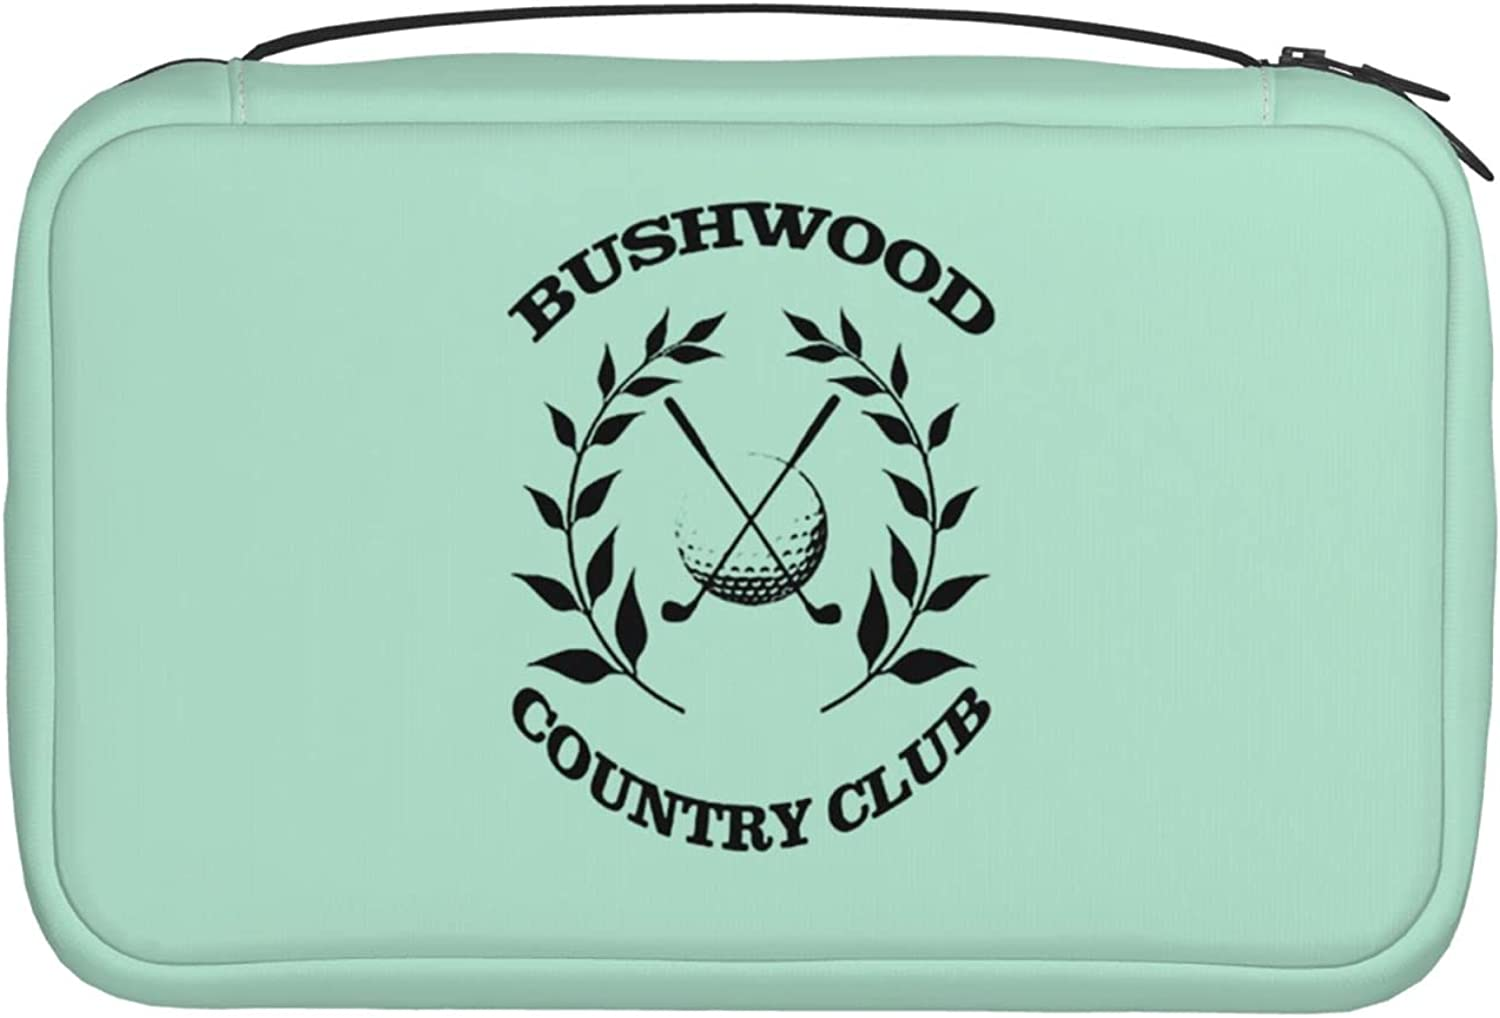 Bushwood-Country Club Free Shipping New Toiletry Bag Organizer Makeup New Free Shipping Tra Cosmetic